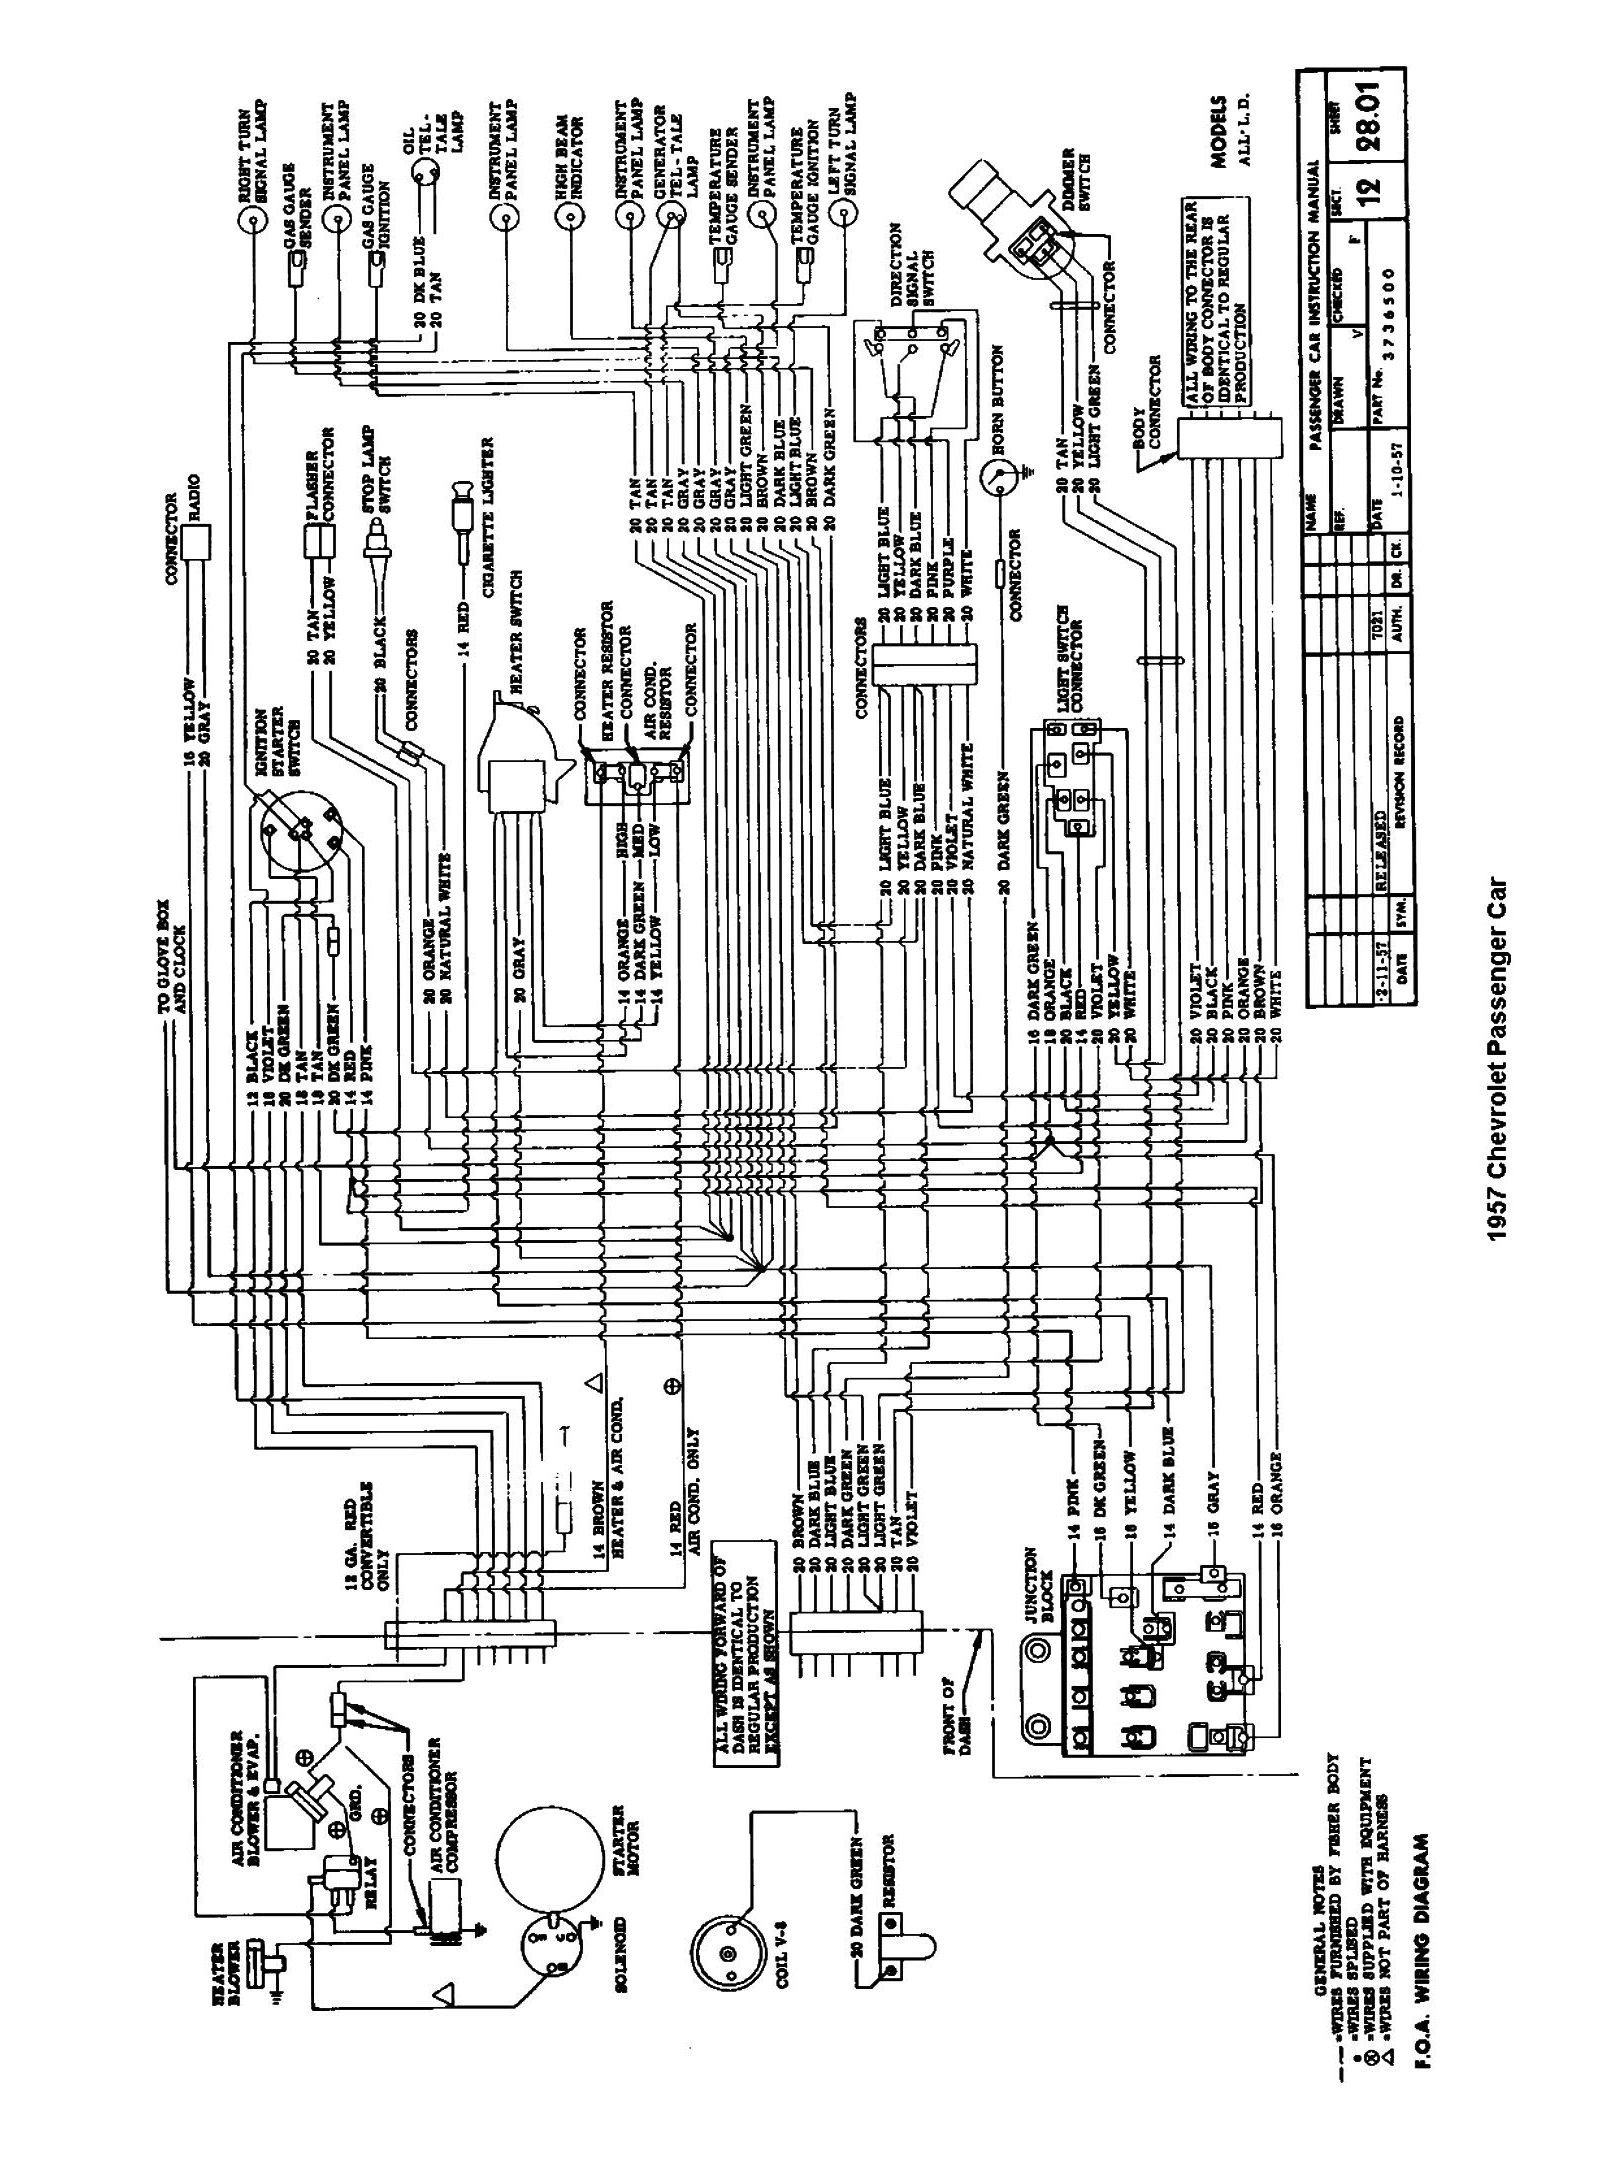 hight resolution of chevy wiring diagrams 1956 chevy headlight switch wiring diagram 1957 chevy headlight wiring diagram